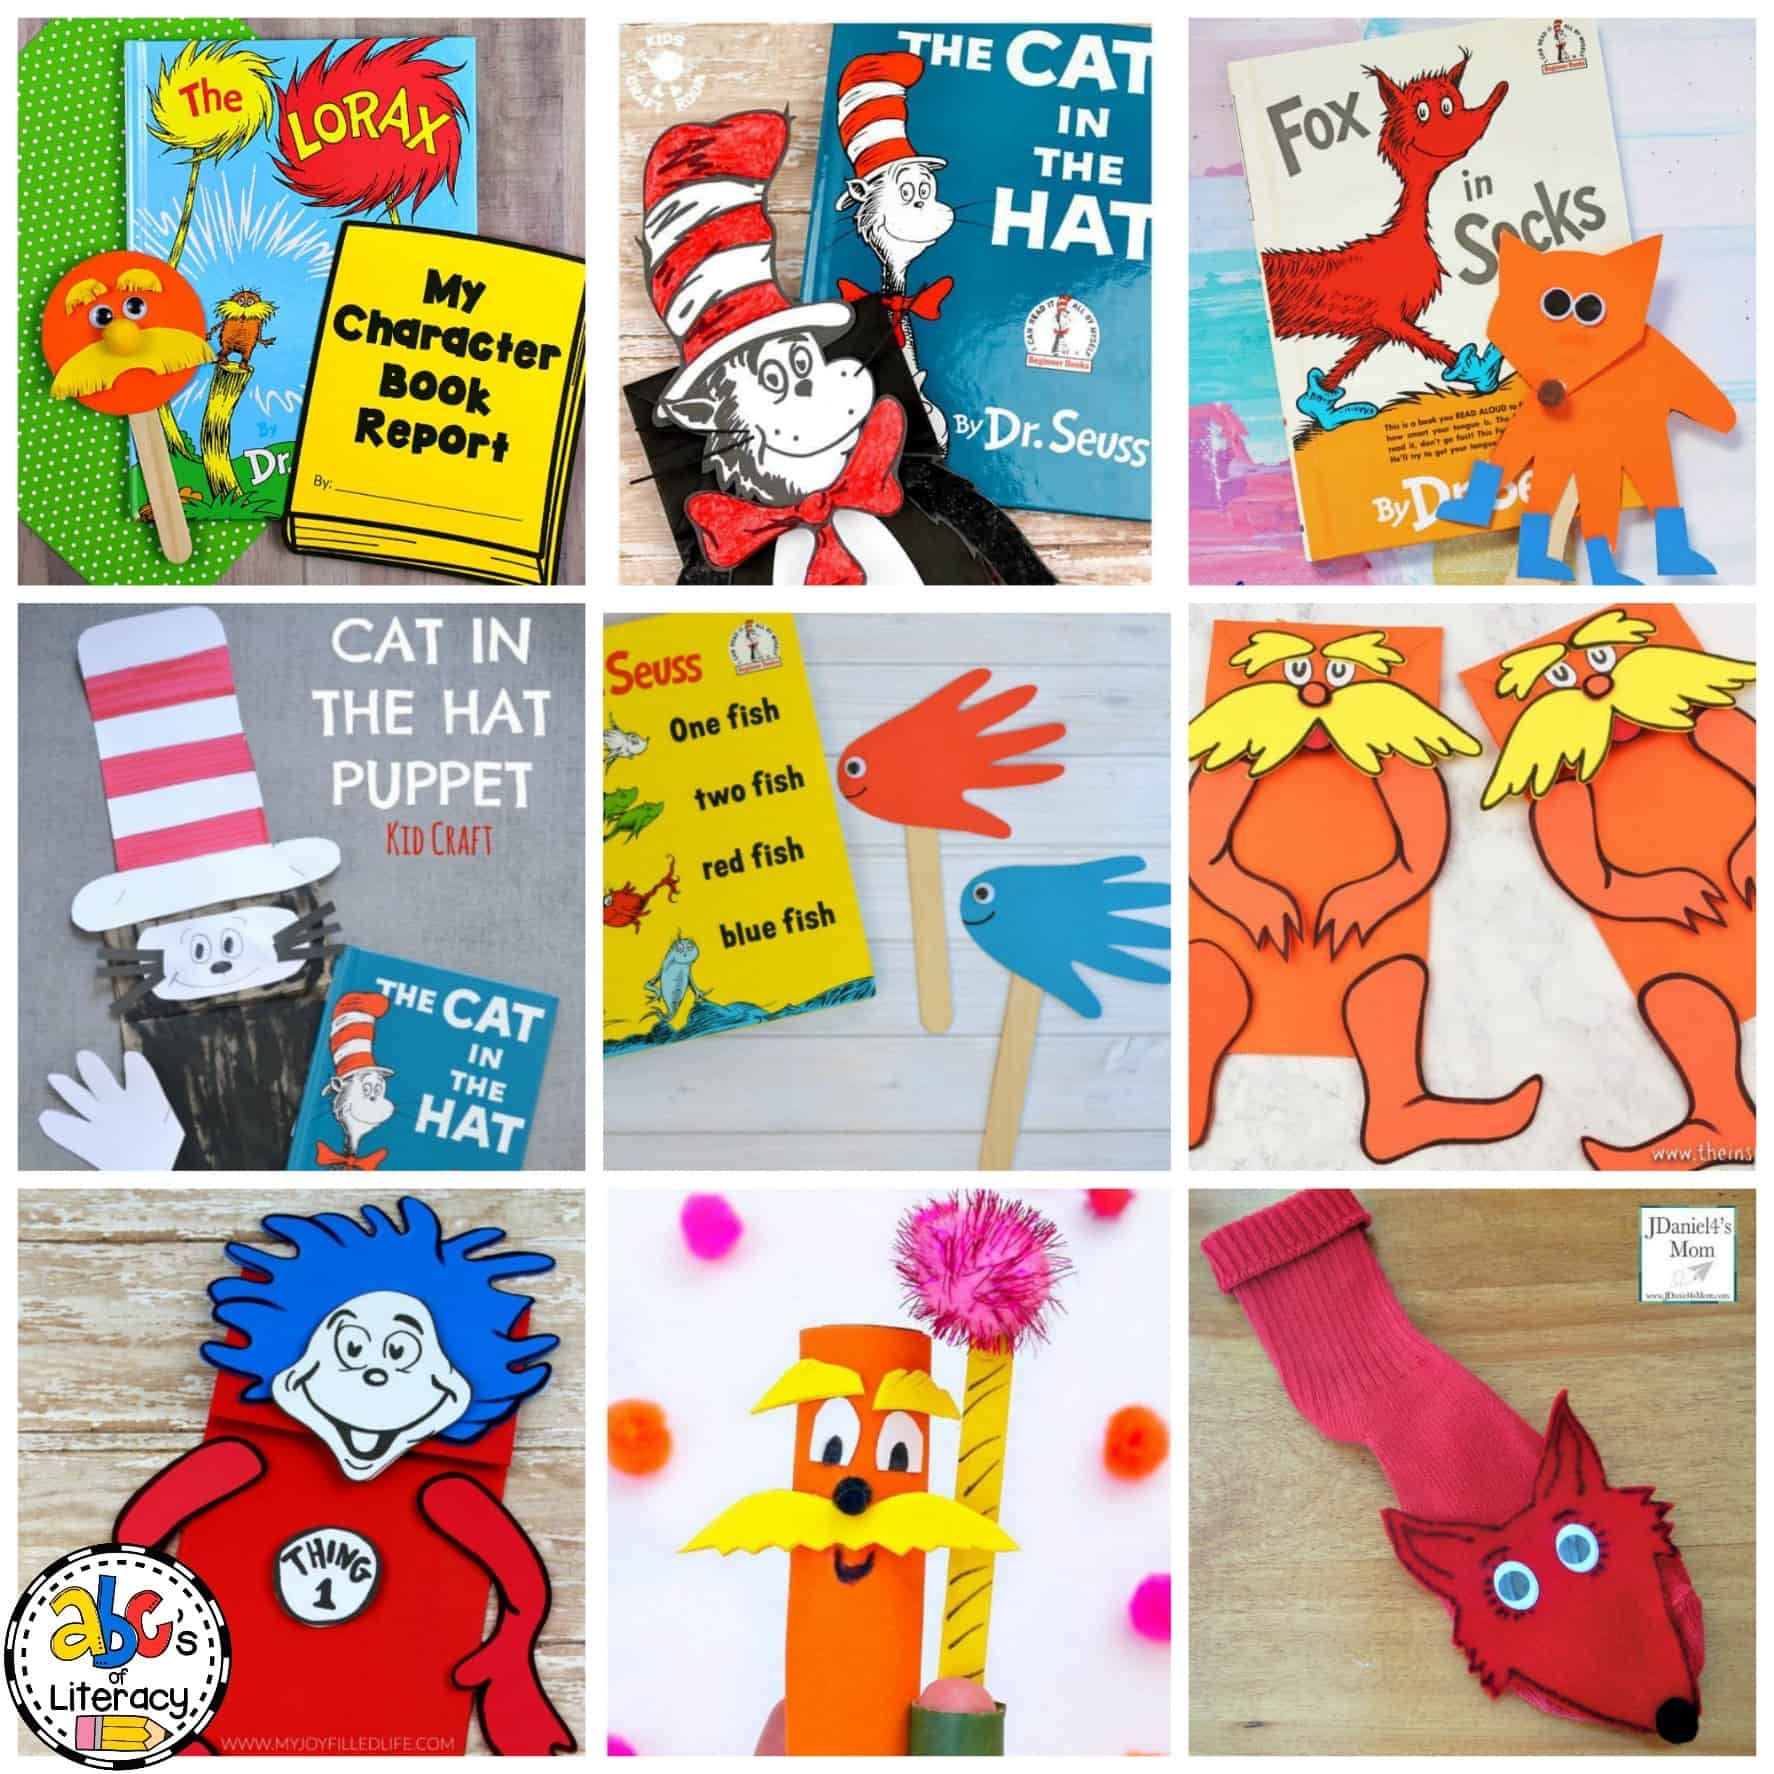 Dr Seuss Inspired Puppets Crafts For The Dr Seuss Author